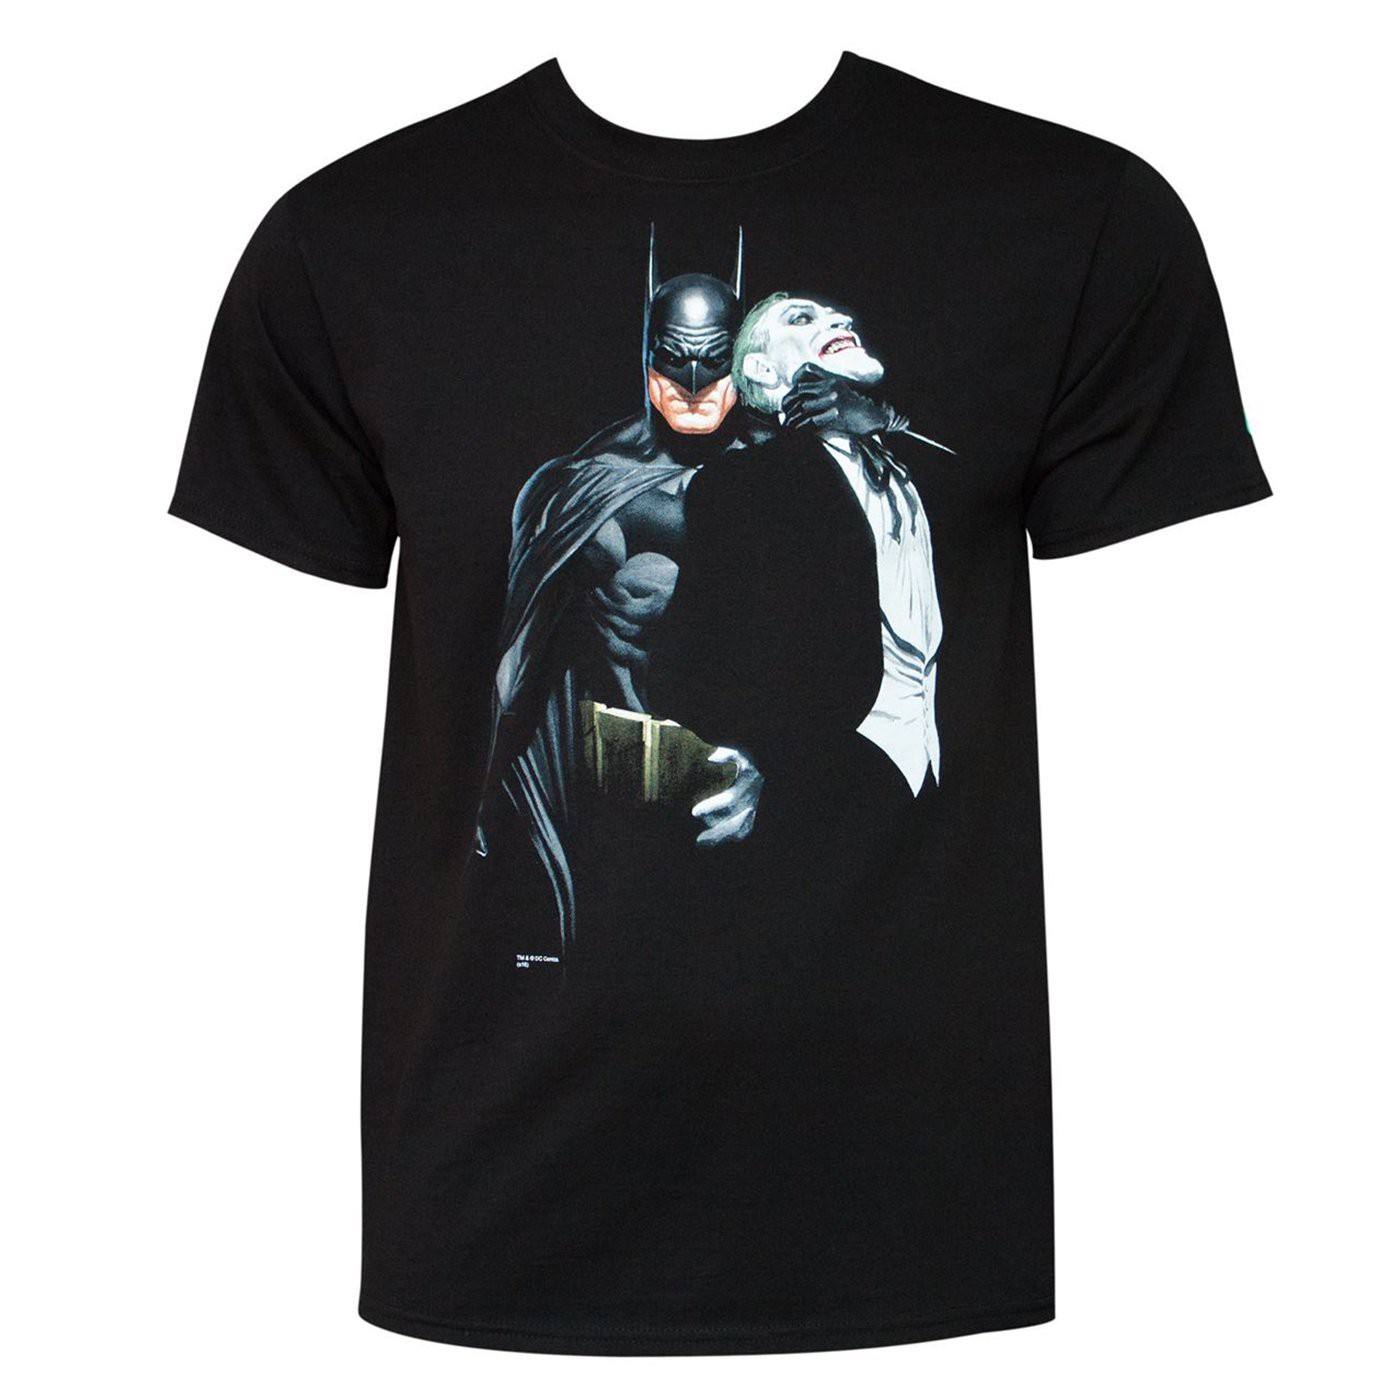 Batman: Chokeout T-Shirt by Alex Ross